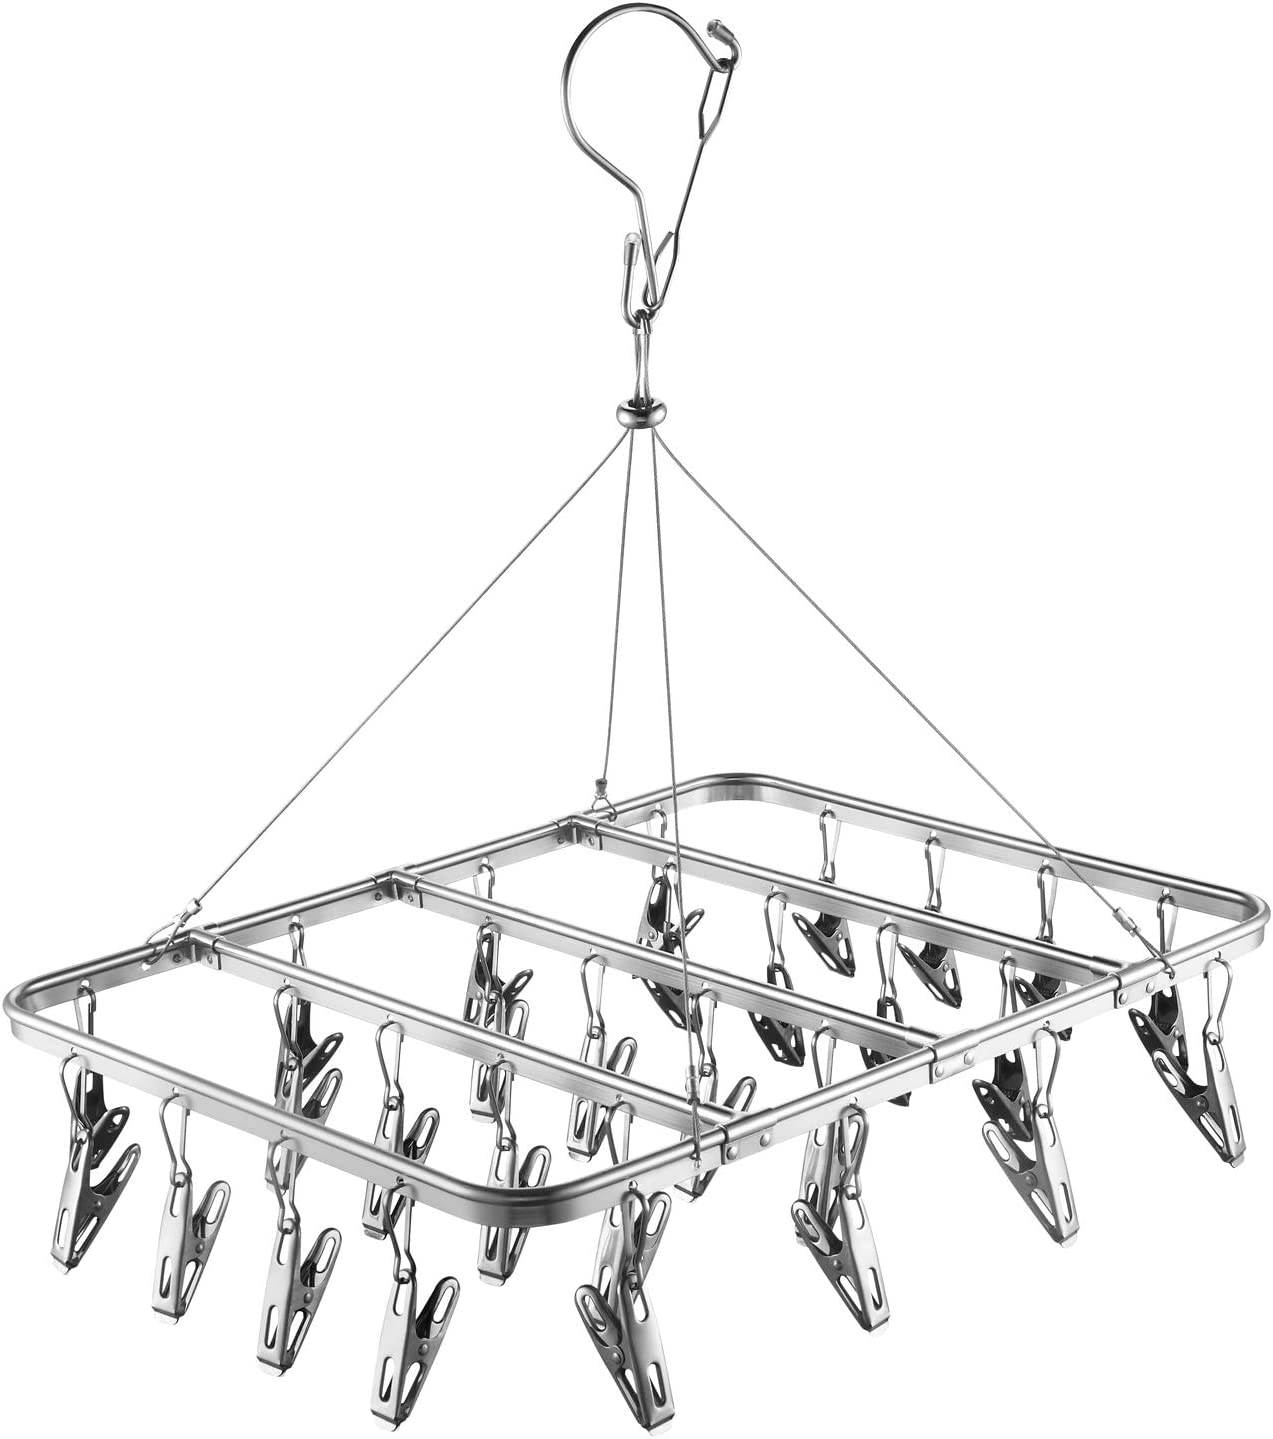 BOJLY Drying Hanger Hanging Rack Drip Clip 28 Free shipping on posting reviews with Ranking integrated 1st place